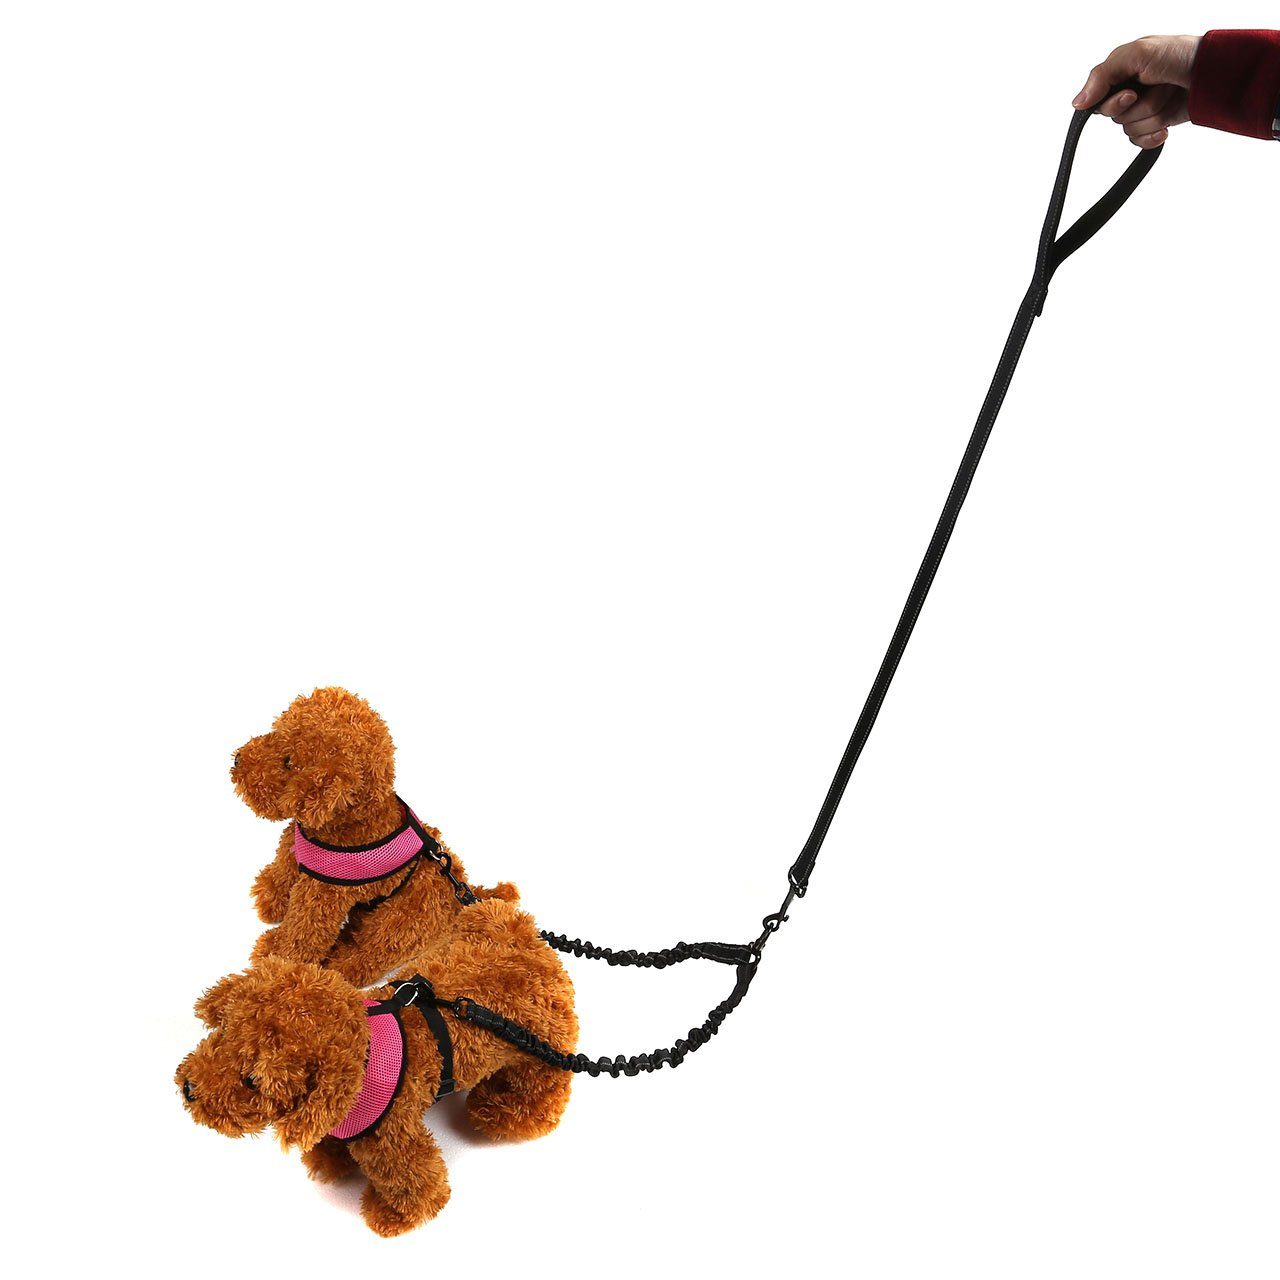 CozyCabin No Tangle Double Dog Leash Coupler, 360°Swivel Tangle Free Bungee Reflective Double Dog Leash, Comfortable Shock Absorbing Dual Leash for 2 Medium & Large Dogs